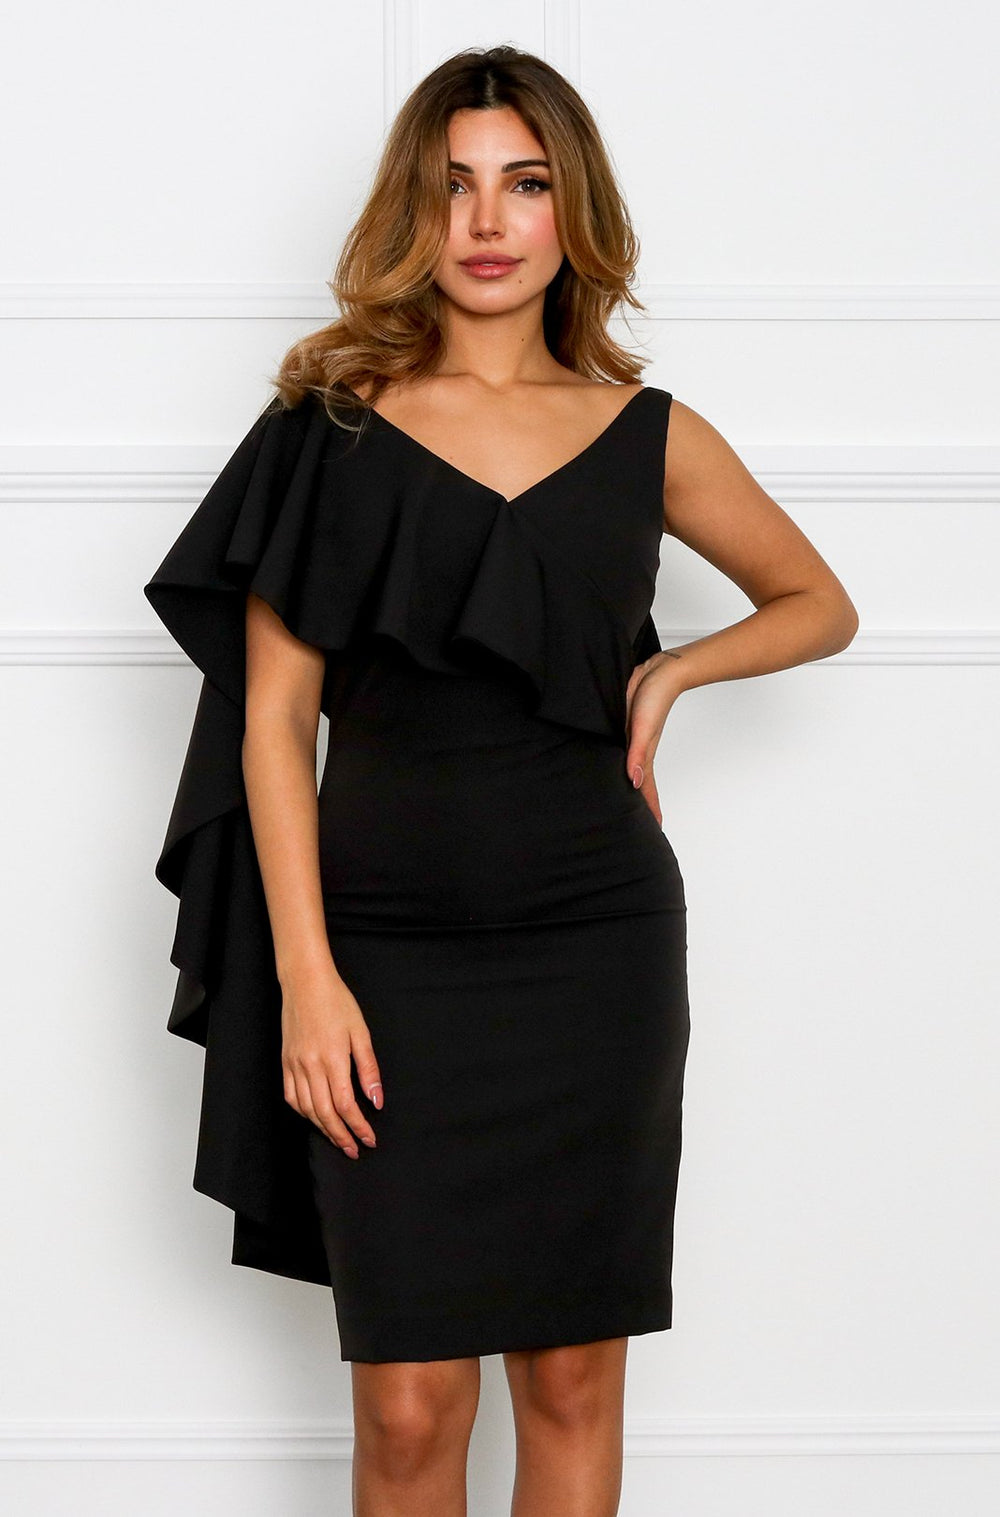 DESIE DRESS - BLACK